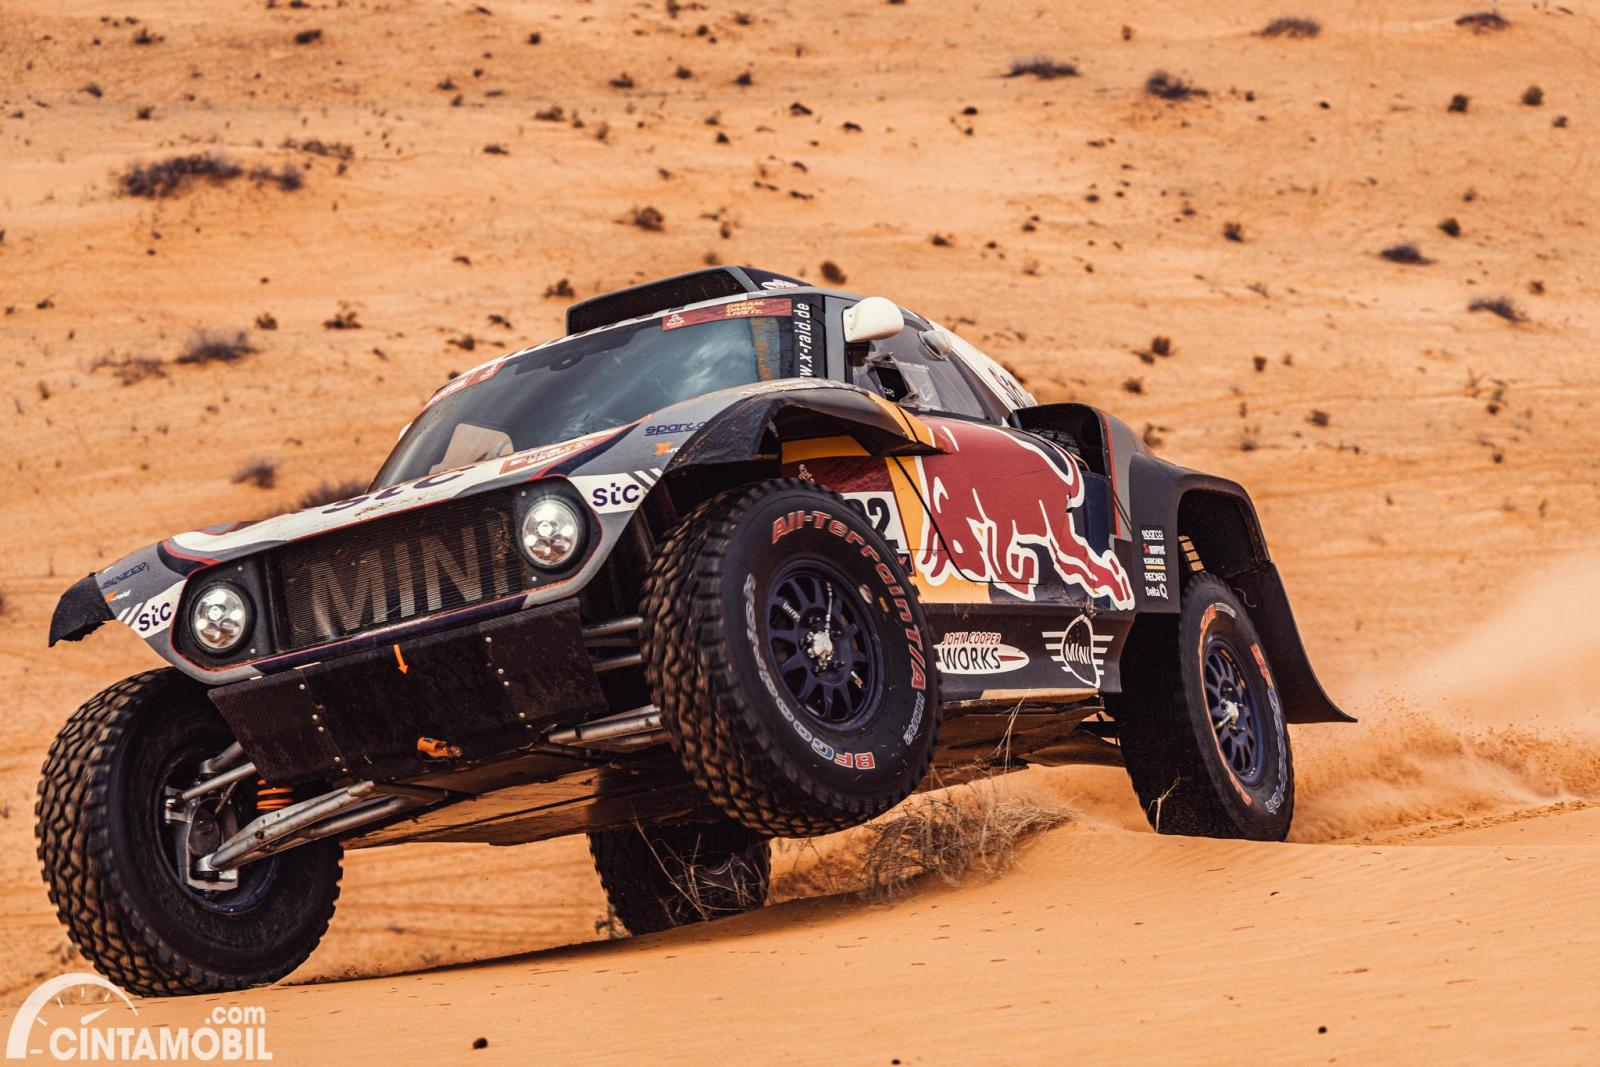 Stephane Peterhansel beraksi di Dakar 2021 Stage 7